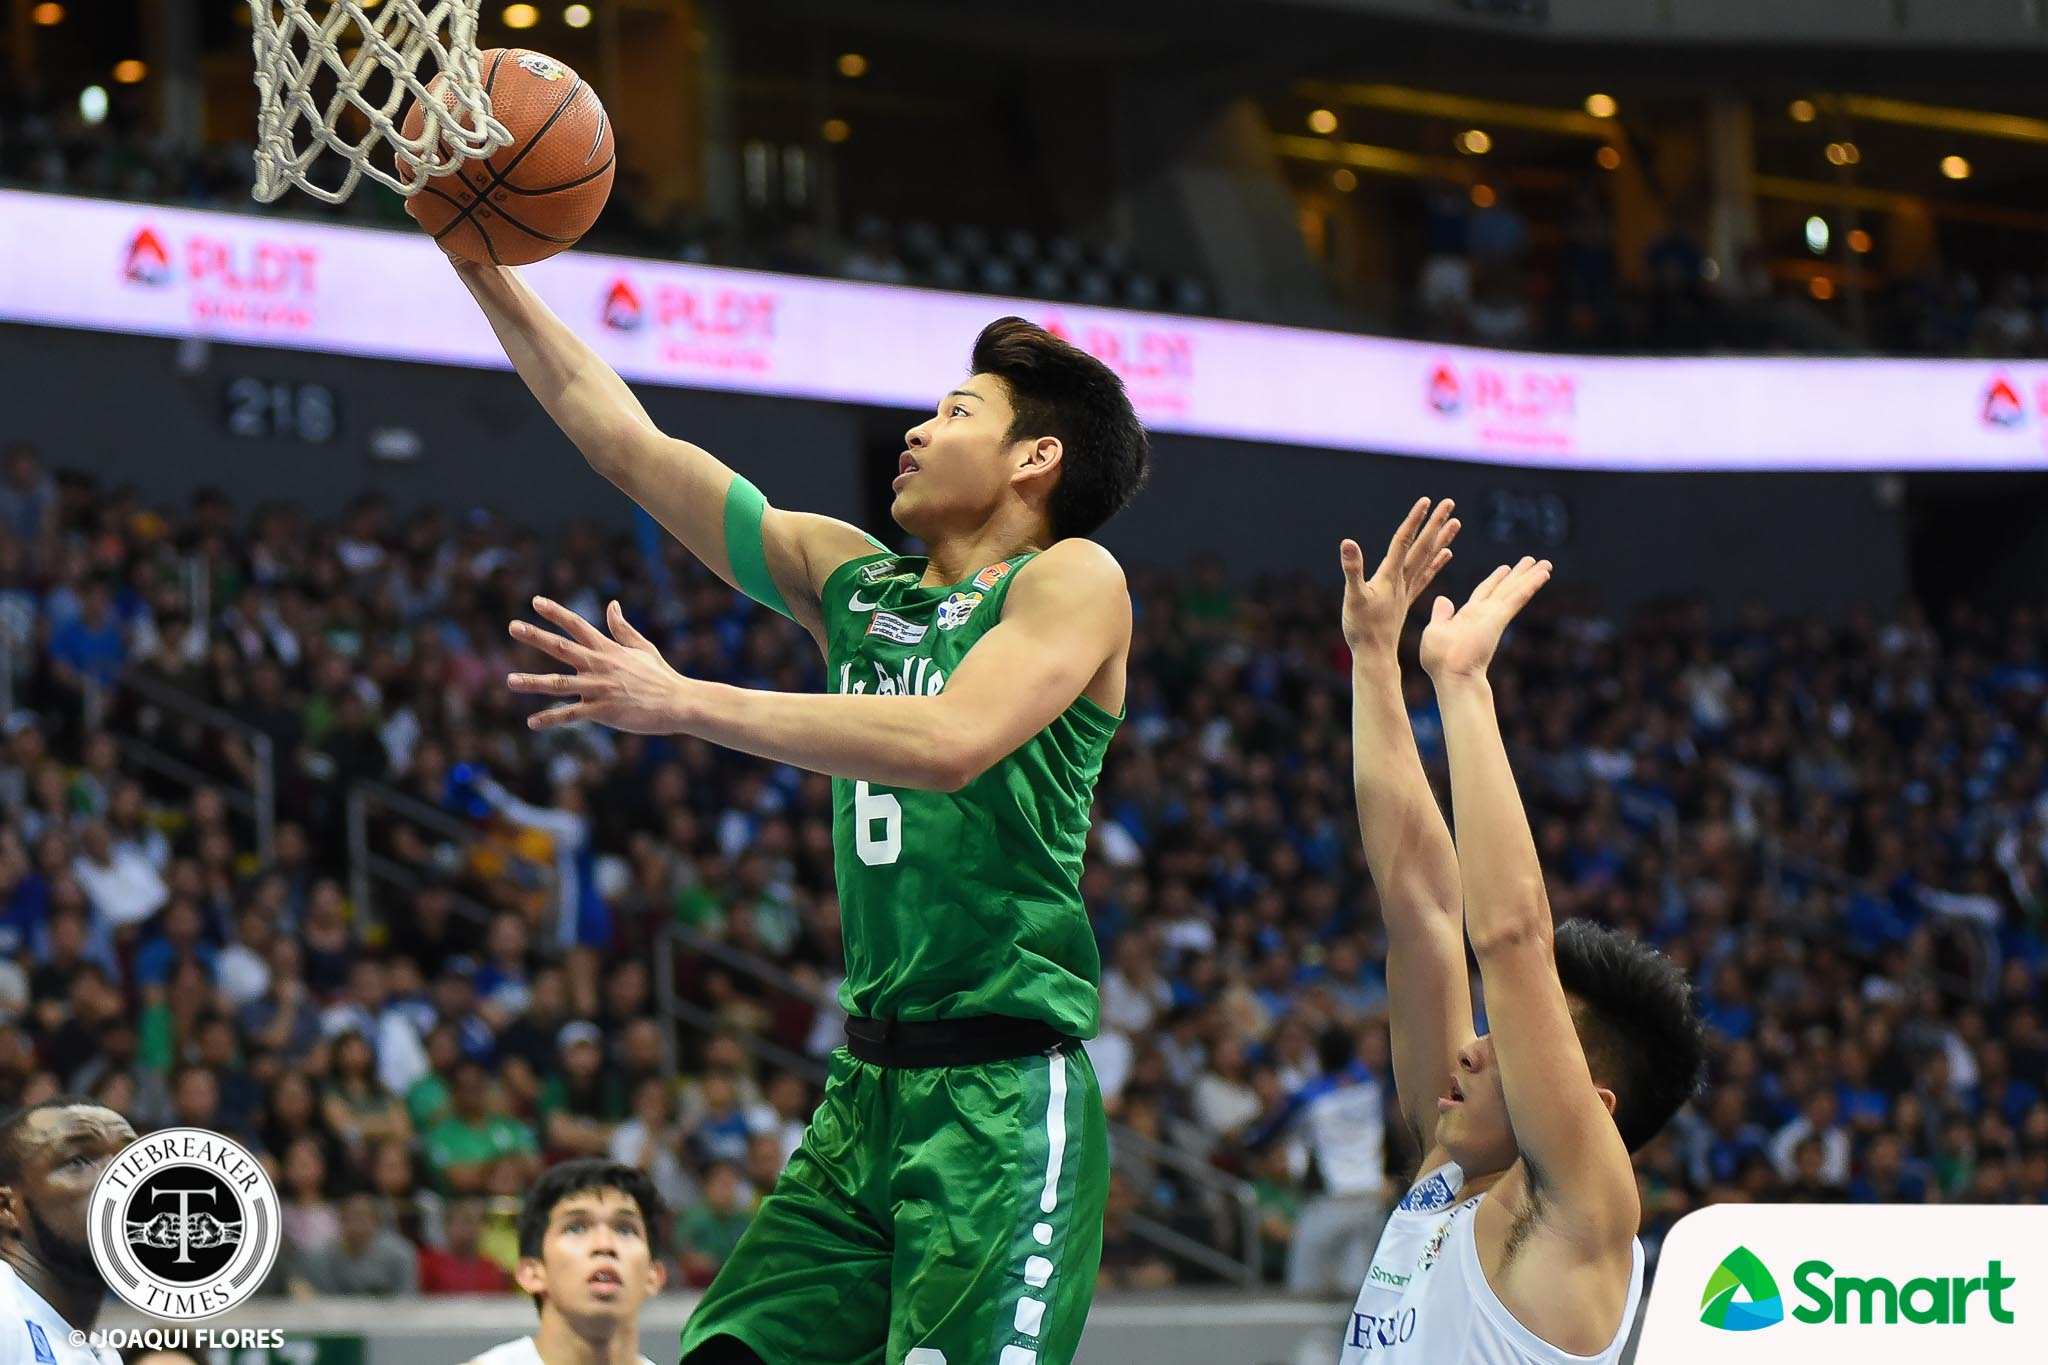 Philippine Sports News - Tiebreaker Times UAAP looks to summon select Green Archers prior to Game 2 ADMU Basketball DLSU News UAAP  UAAP Season 80 Men's Basketball UAAP Season 80 Tab Baldwin Ricci Rivero DLSU Men's Basketball Ateneo Men's Basketball Aljun Melecio Abu Tratter